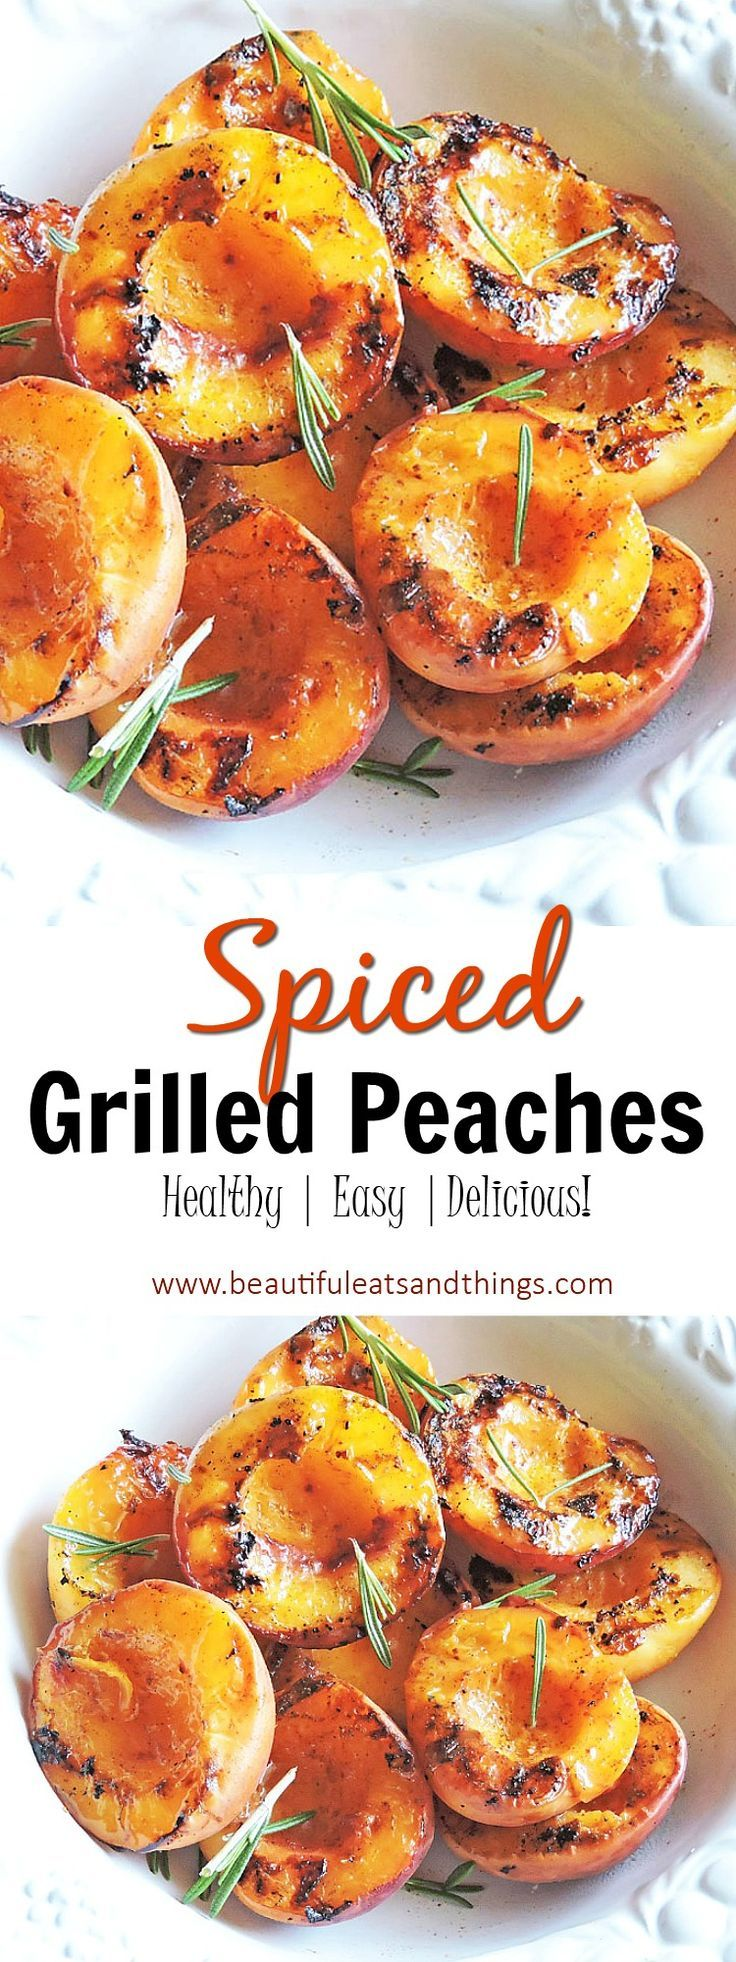 Spiced Grilled Peaches – Beautiful Eats & Things